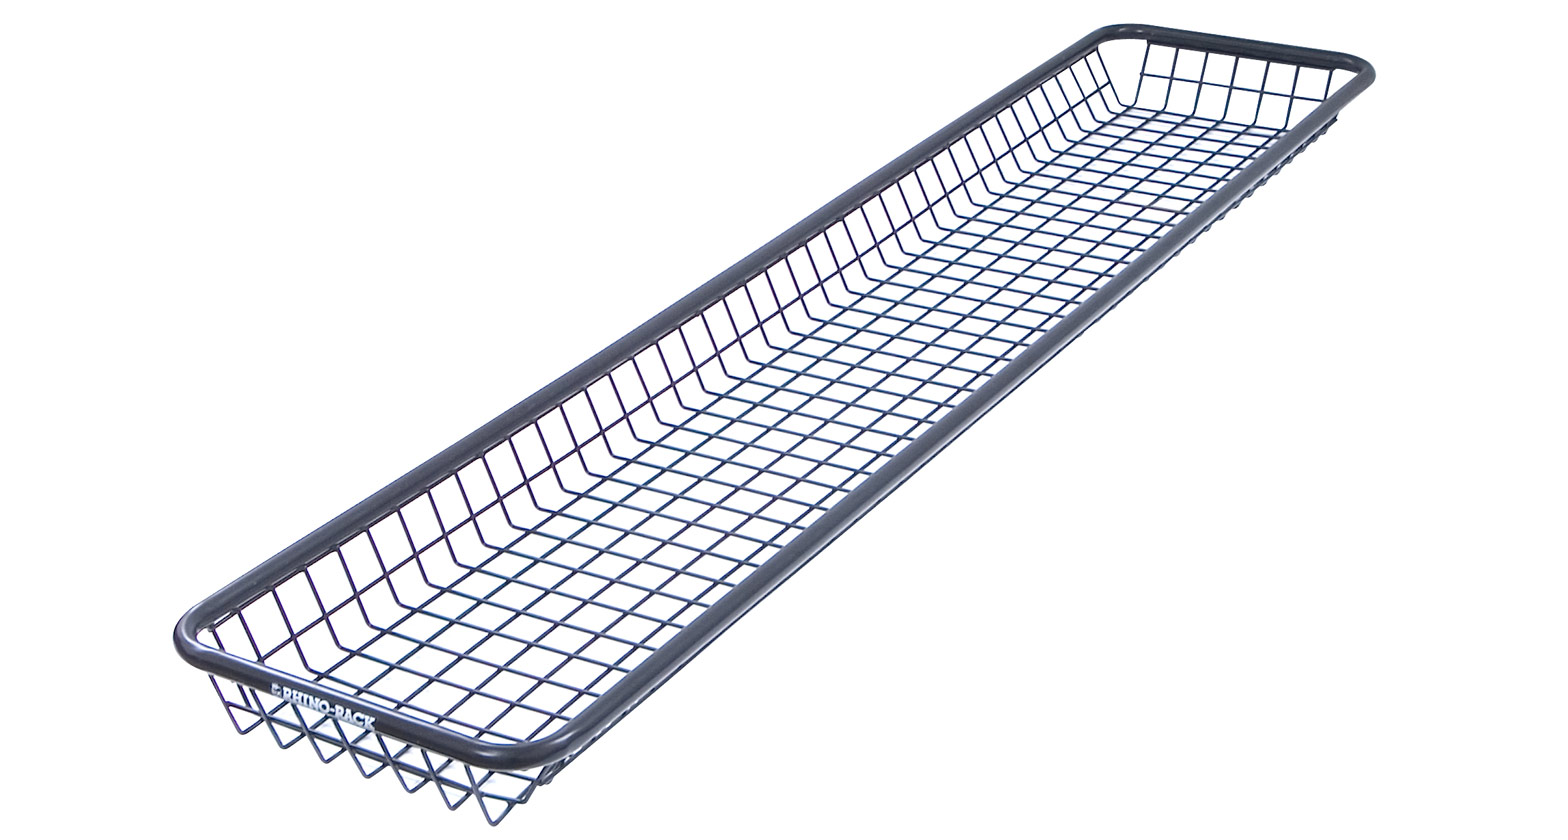 Roof Rack City Rhino Rack Steel Mesh Basket Narrow Rlbn